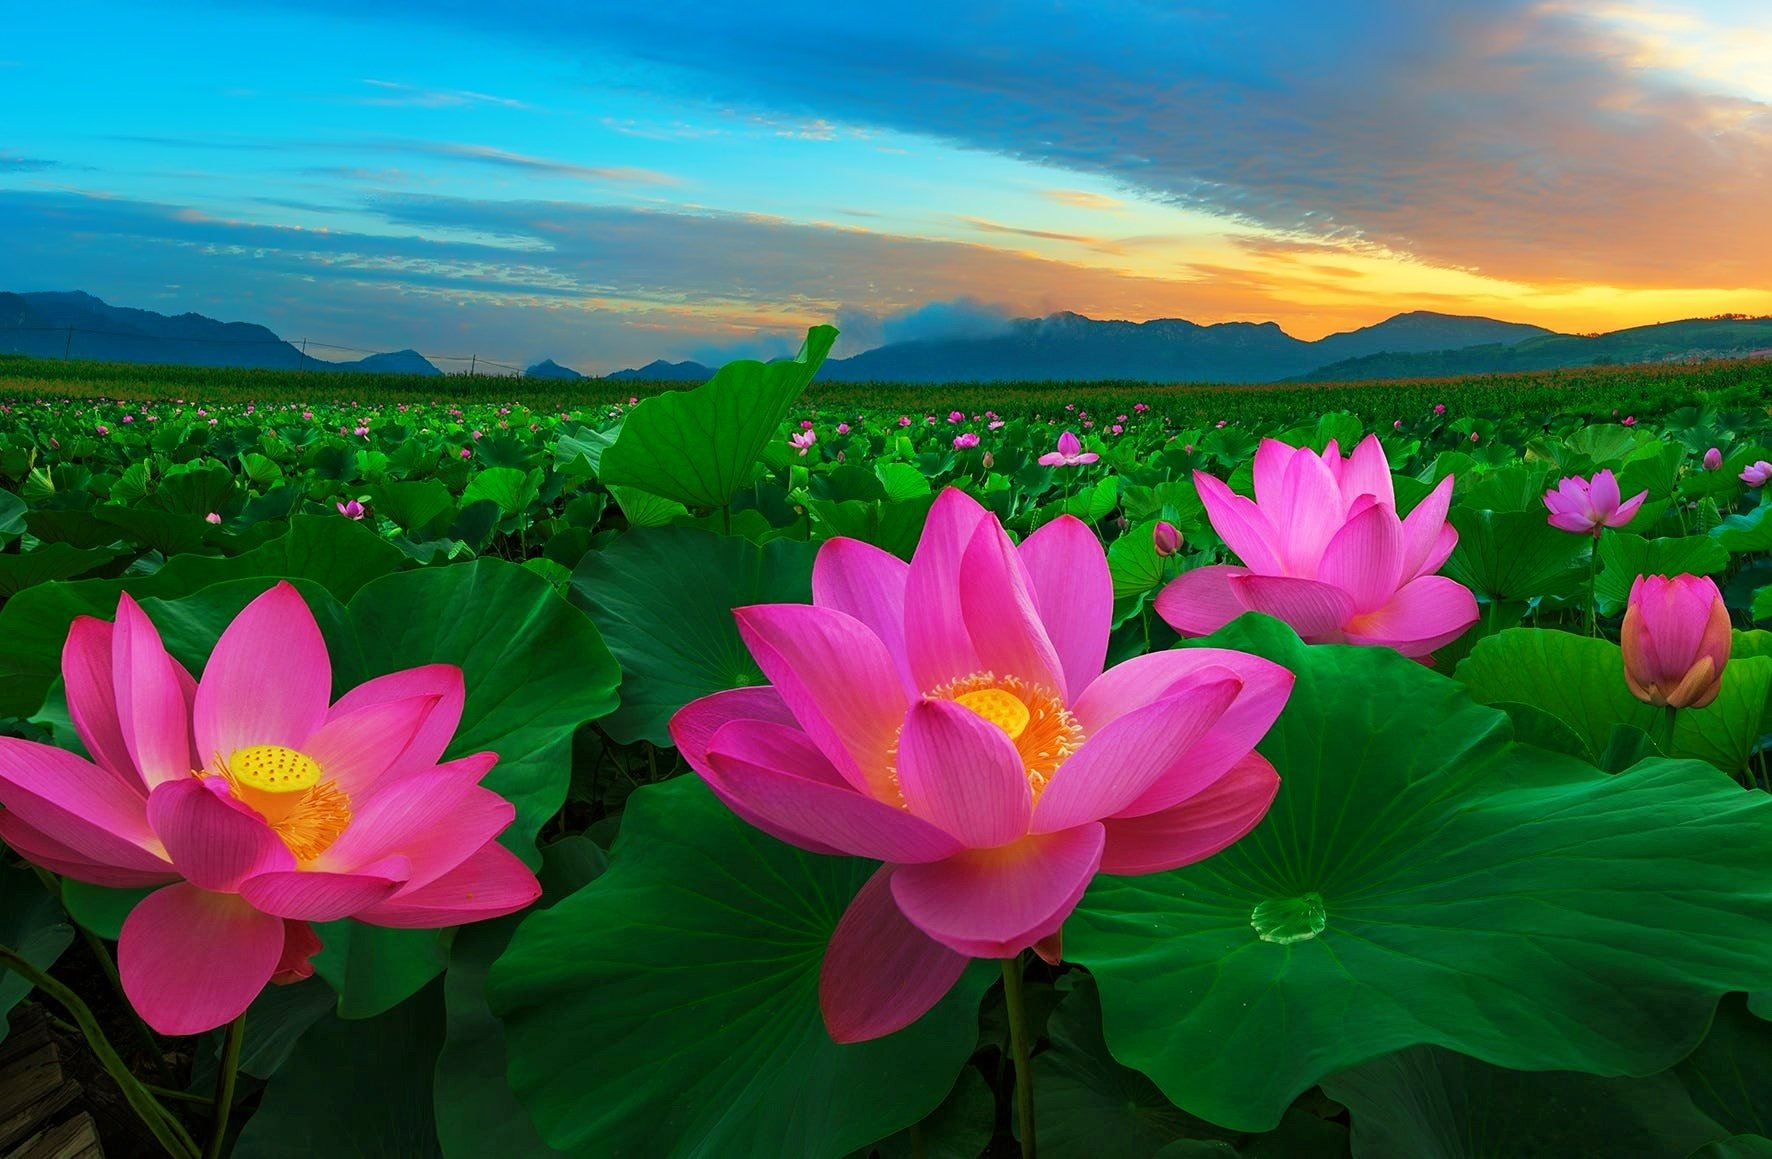 Pink Lotus Flowers Wallpaper and Background Image | 1772x1159